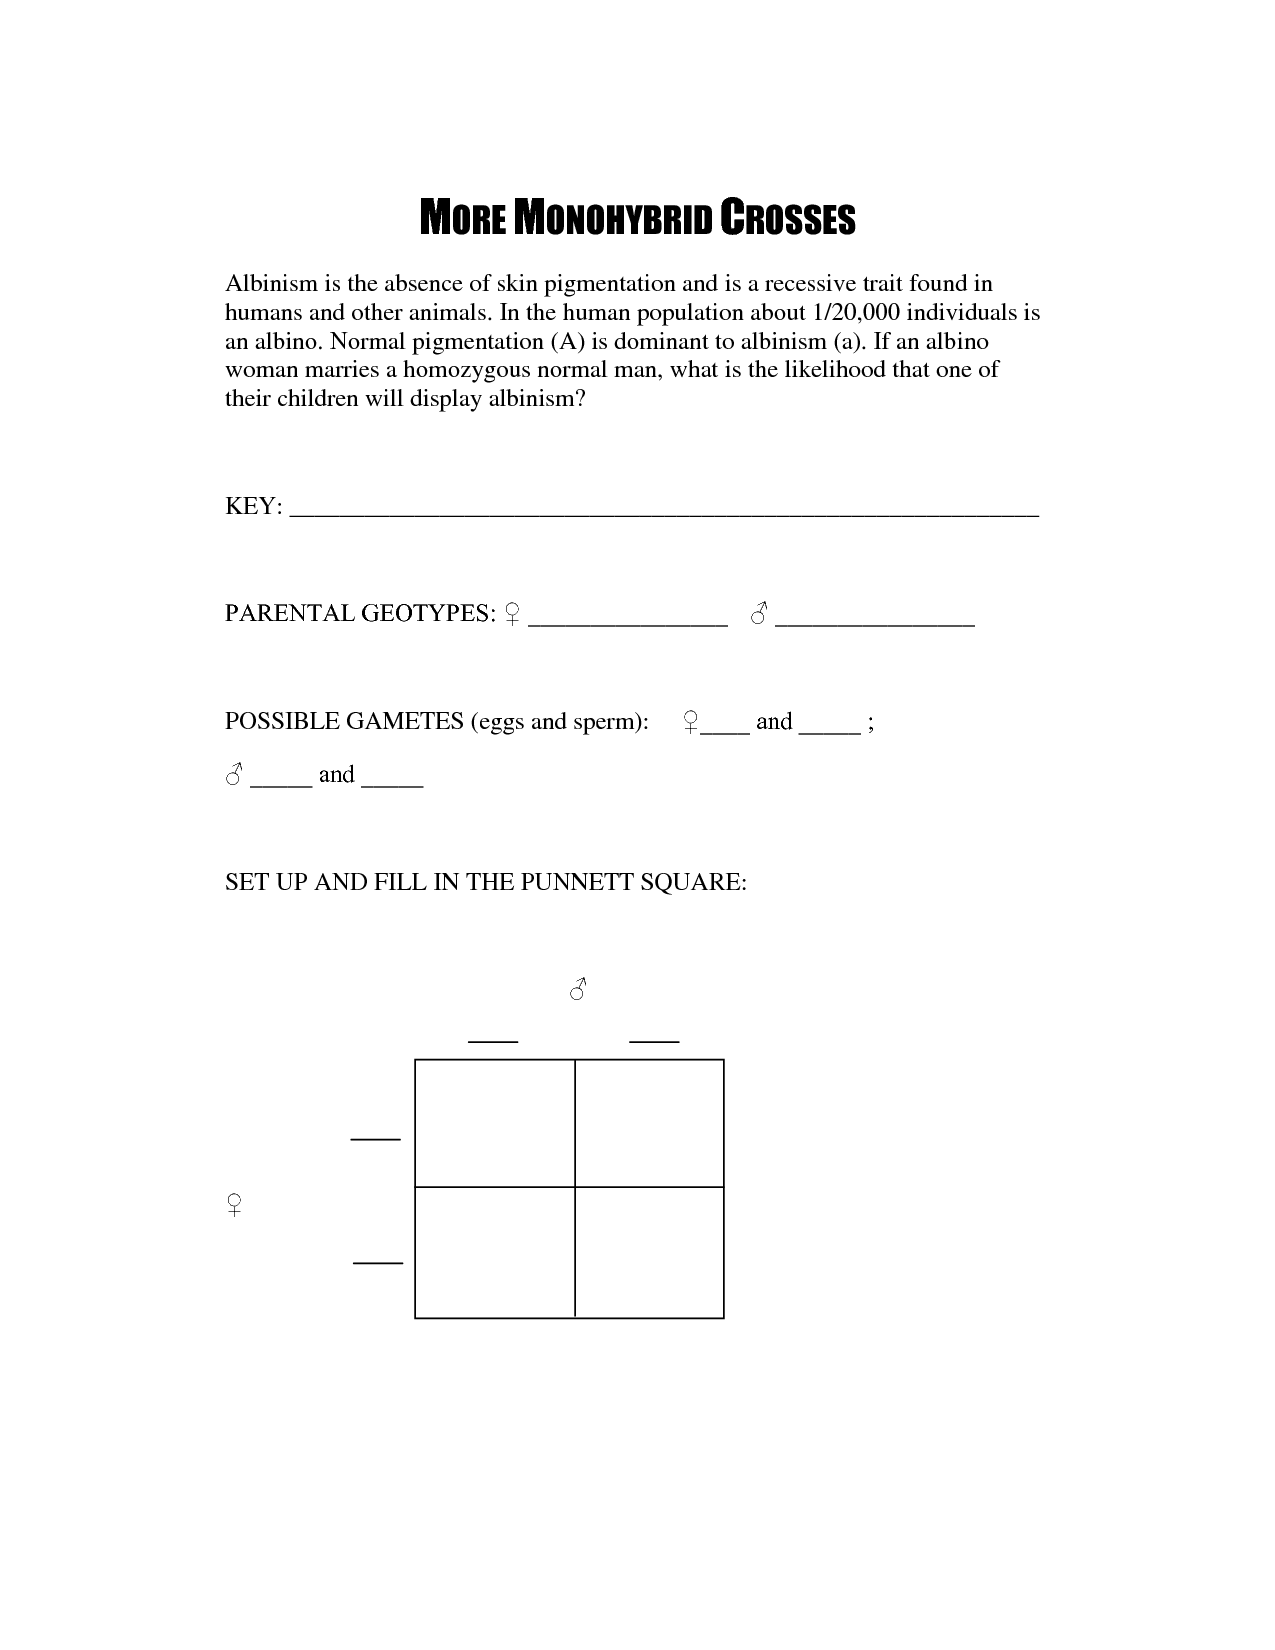 Punnett Square Worksheet With Answers 2